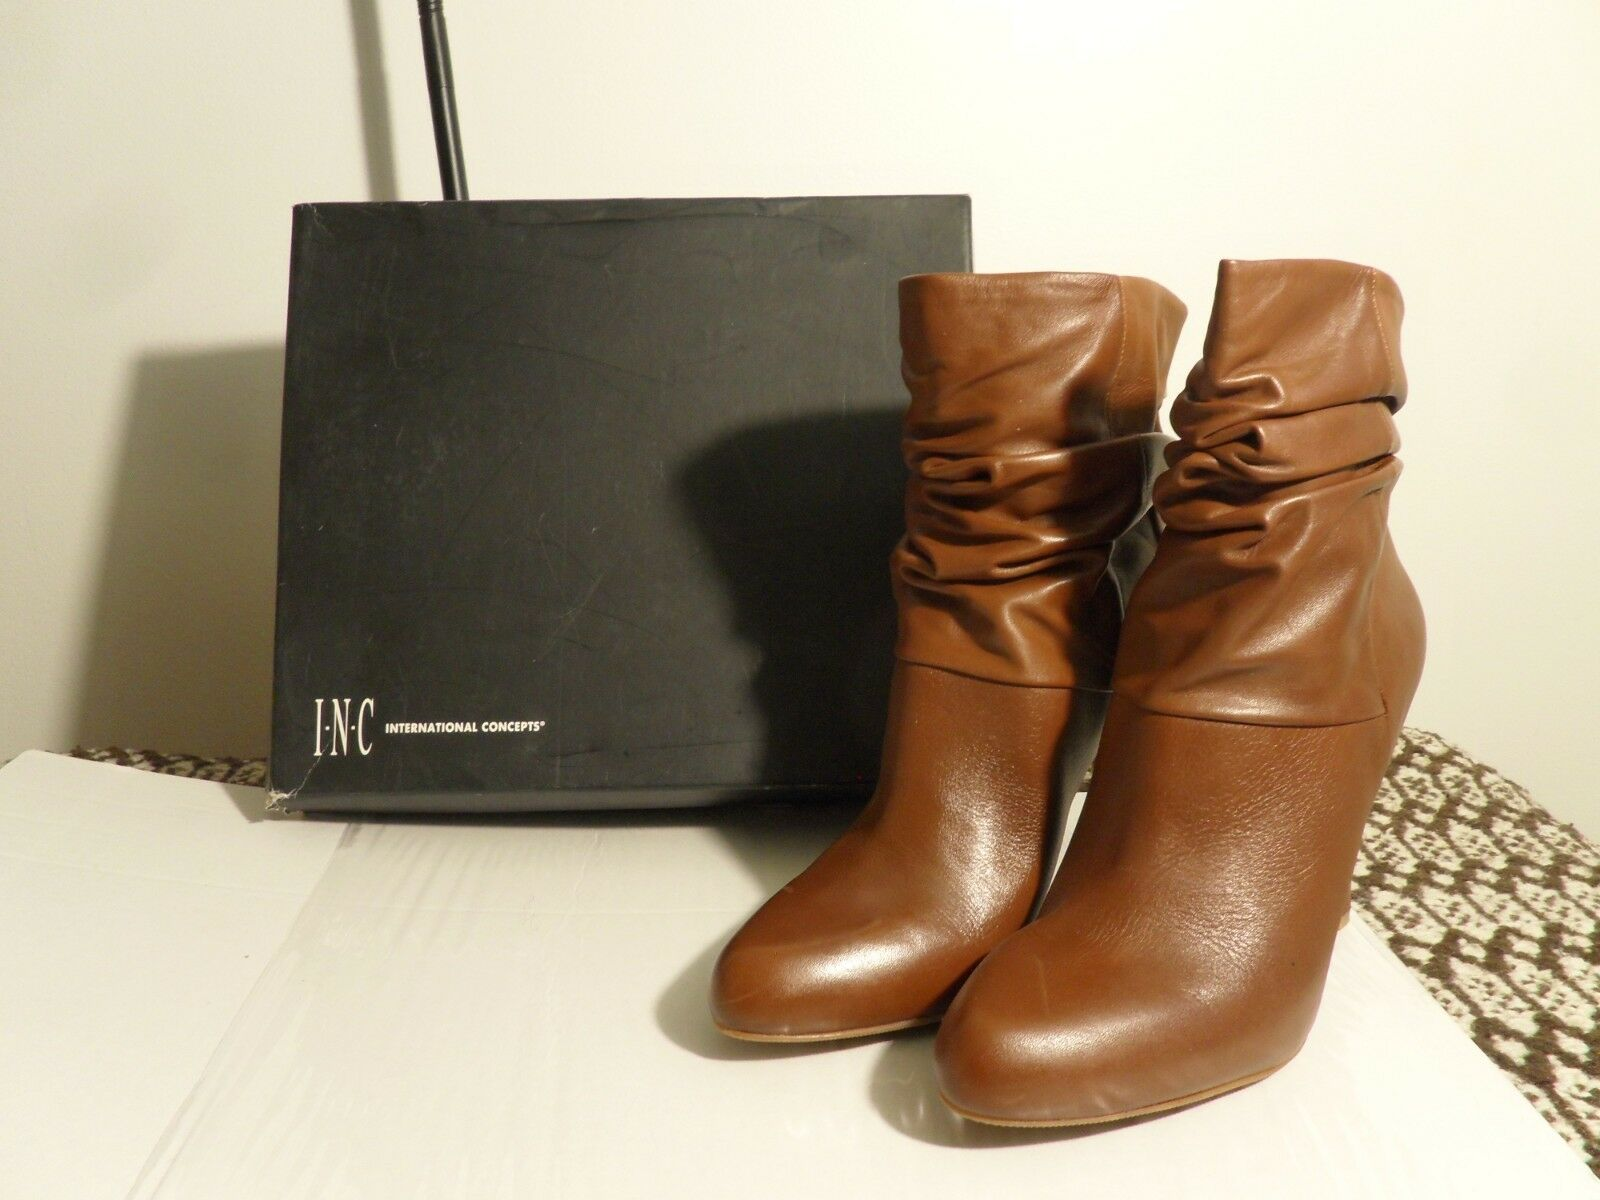 Macy's I-N-C Brown Leather Booties, 9 M